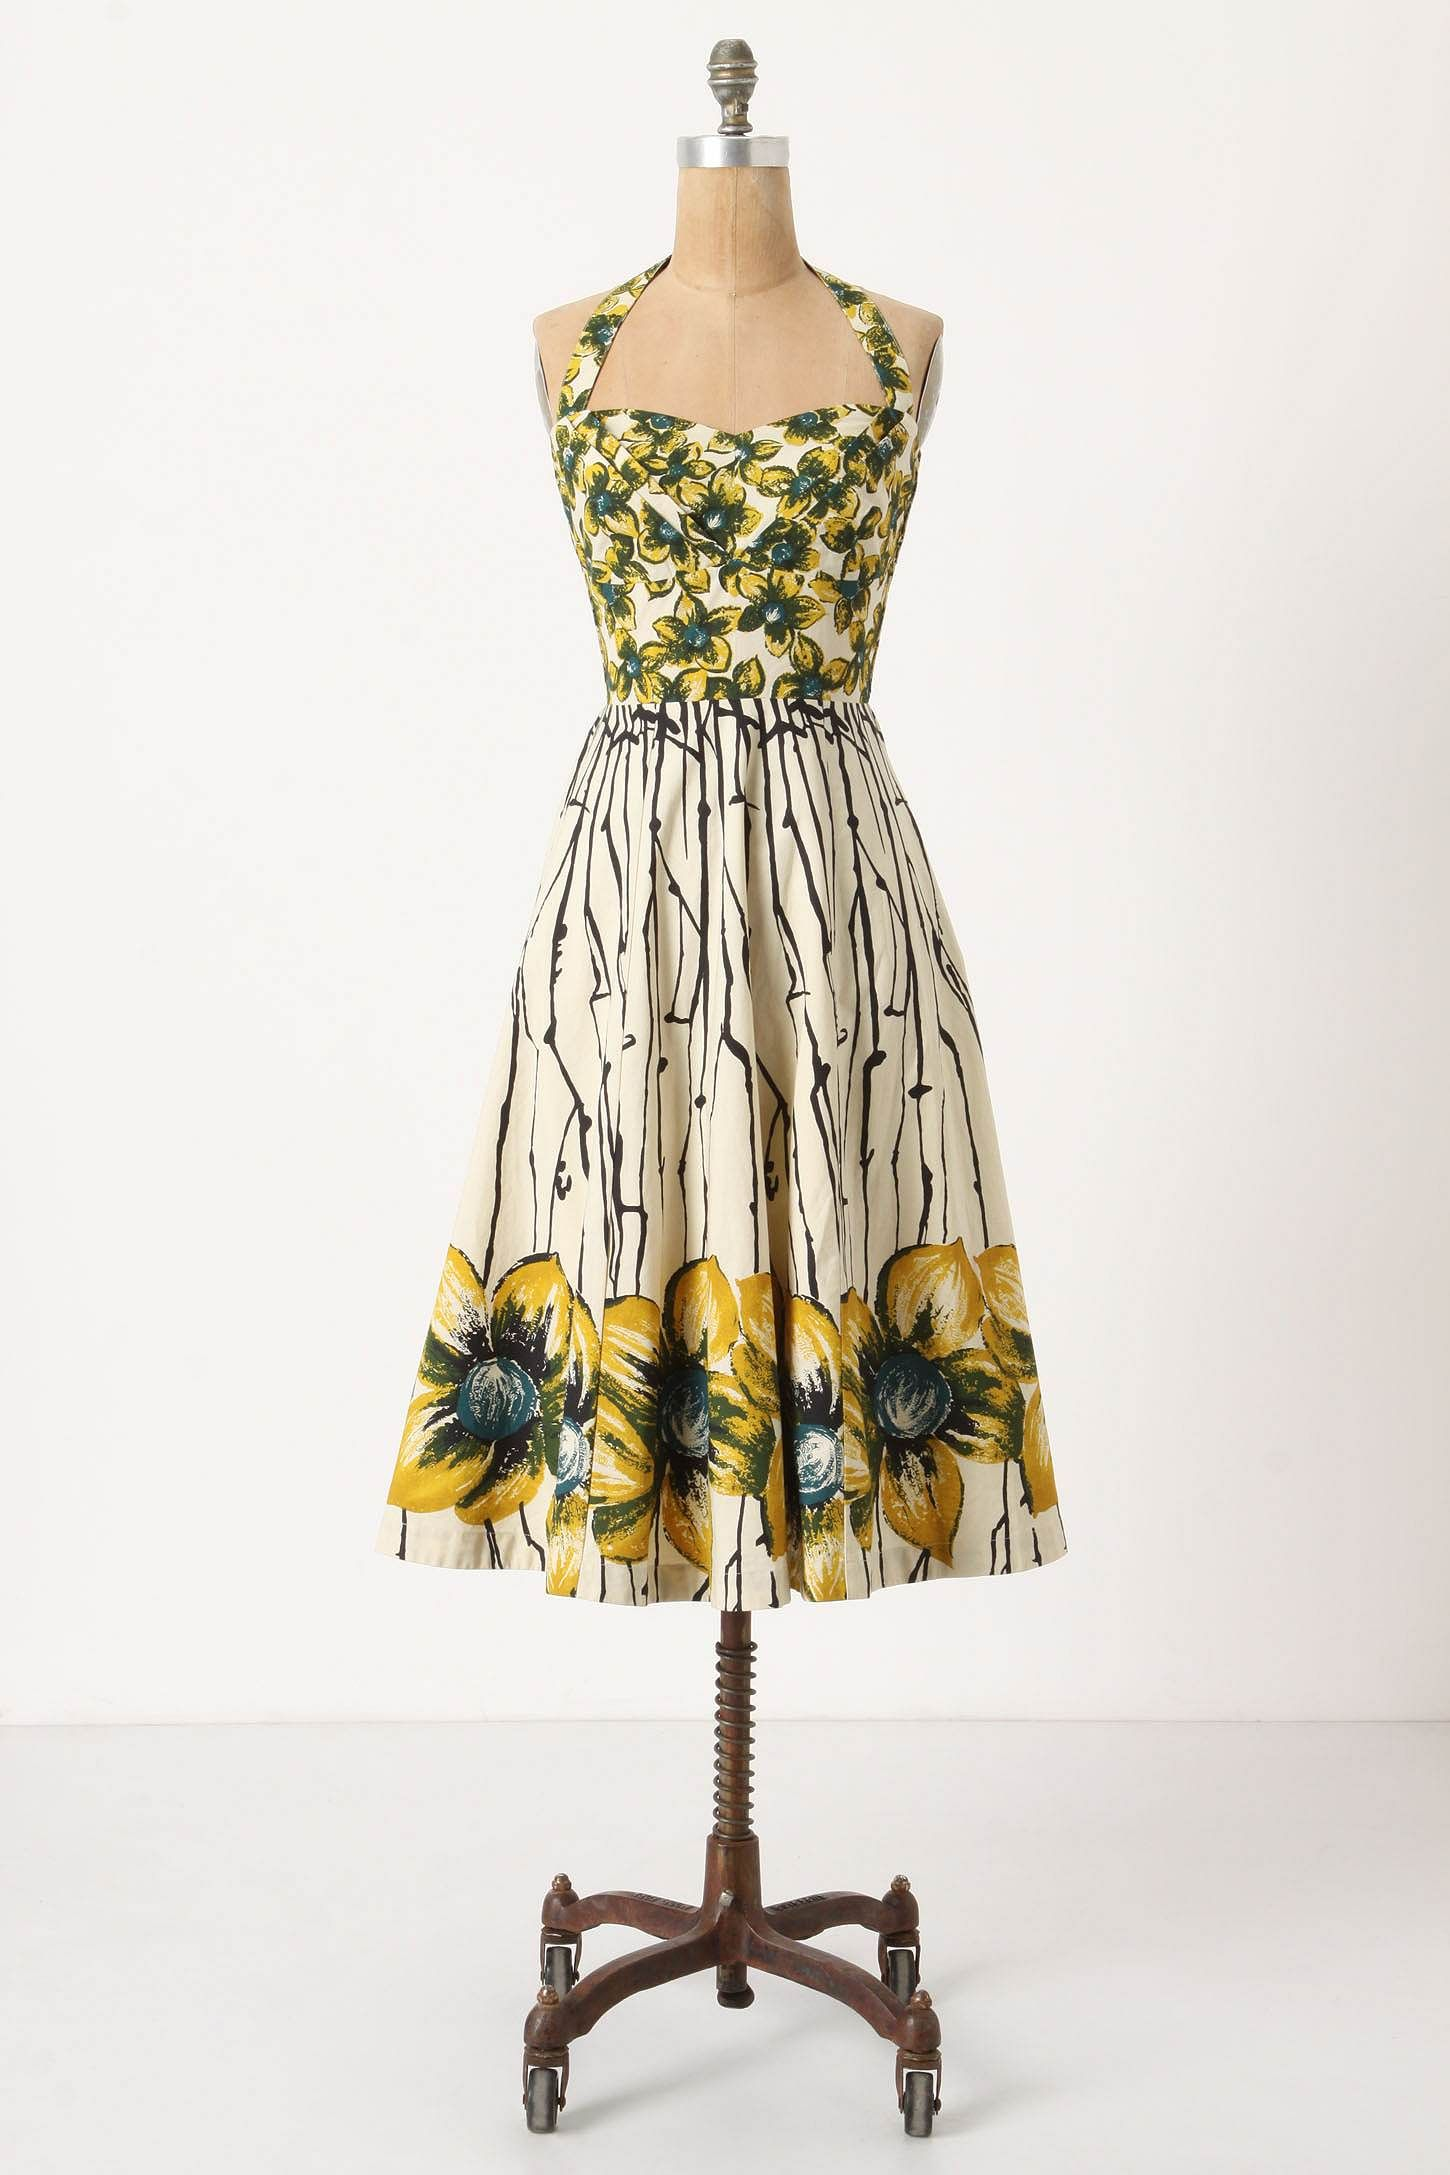 I tried this on at the Anthropologie store in Scottsdale... it truly is lovely.